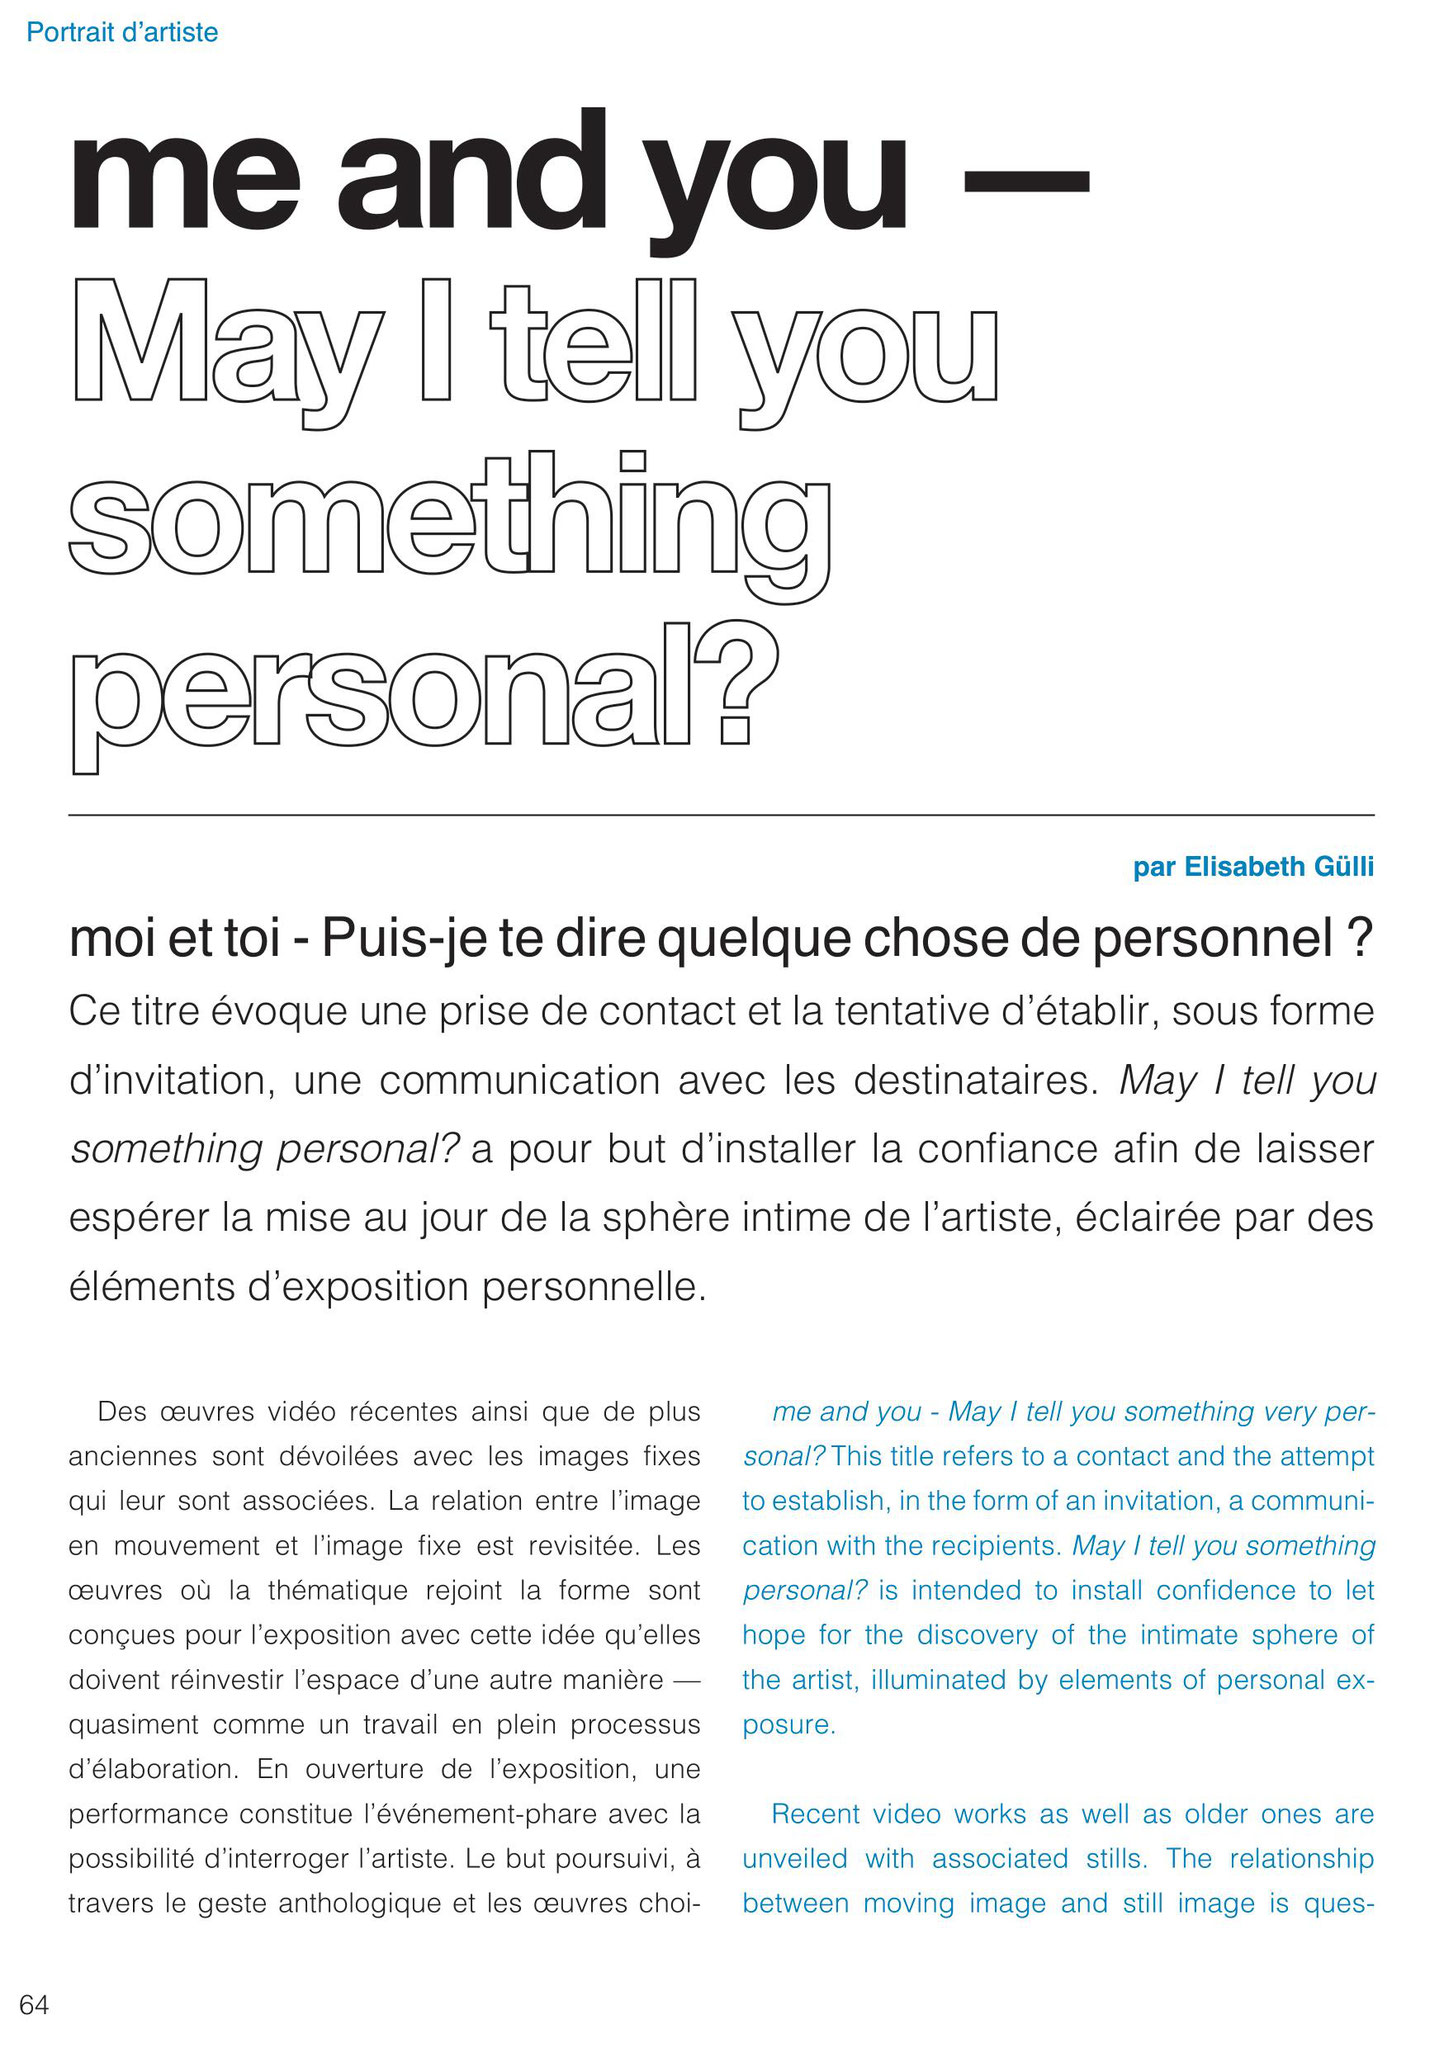 Elisabeth Guelli on me and you - May I tell you something personal?